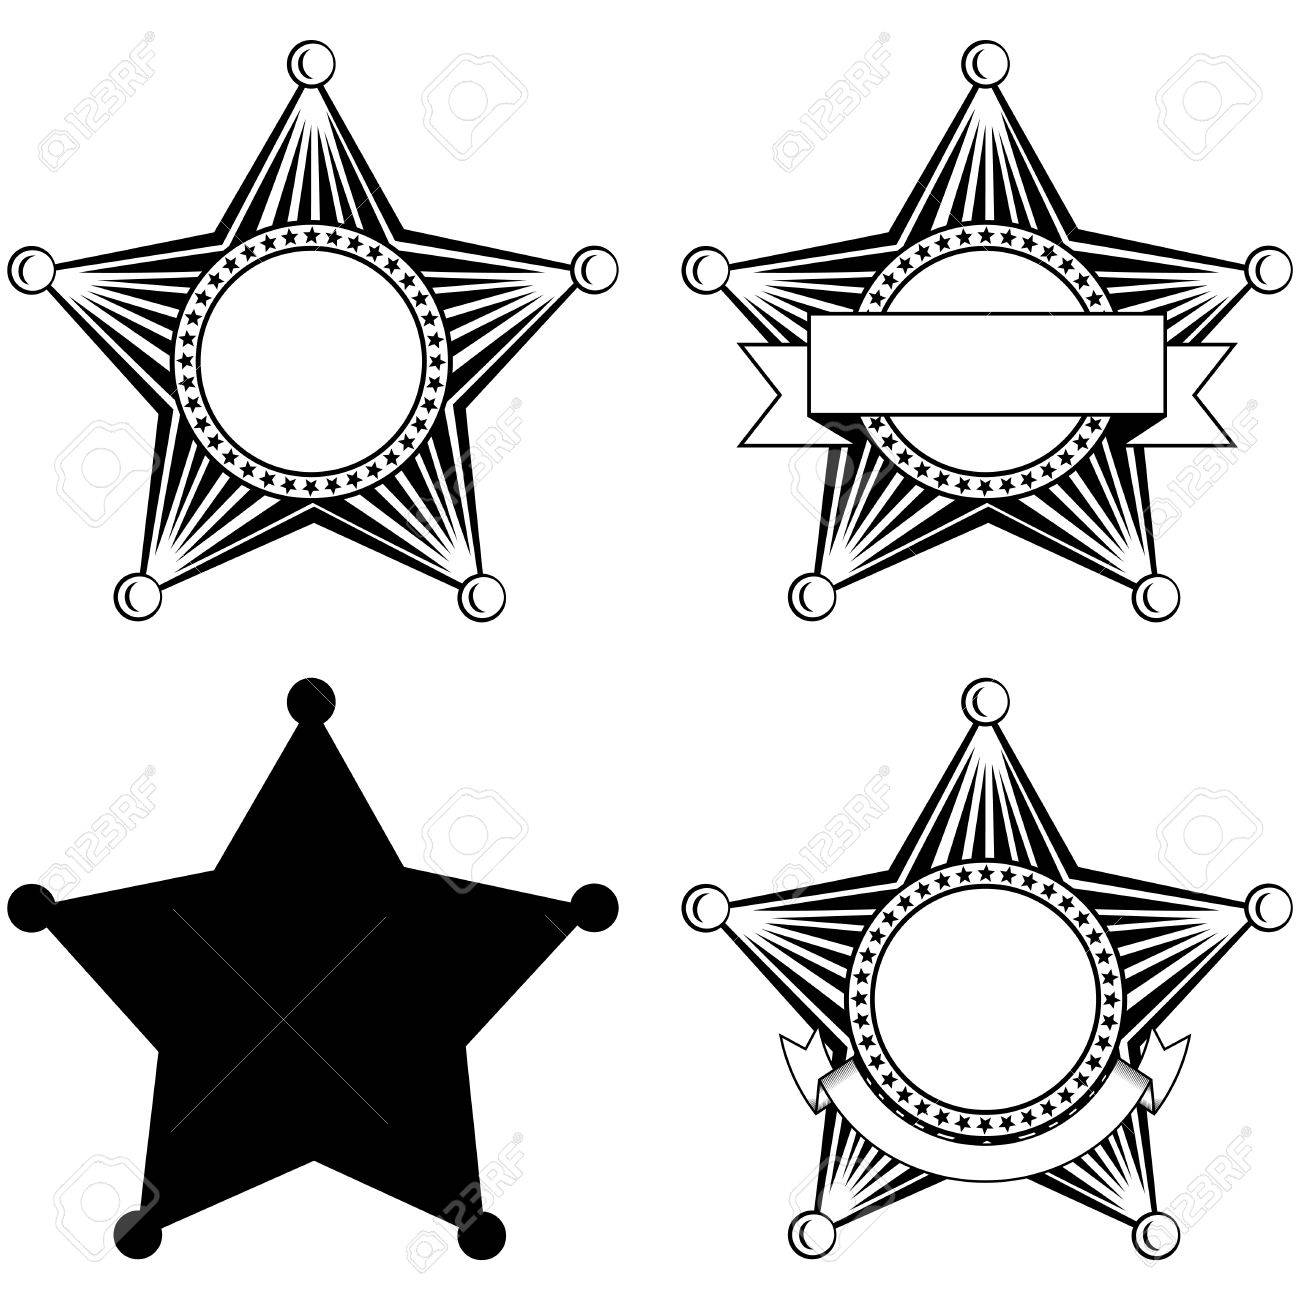 Illustration Five Pointed Sheriffs Star Set Royalty Free Cliparts ...